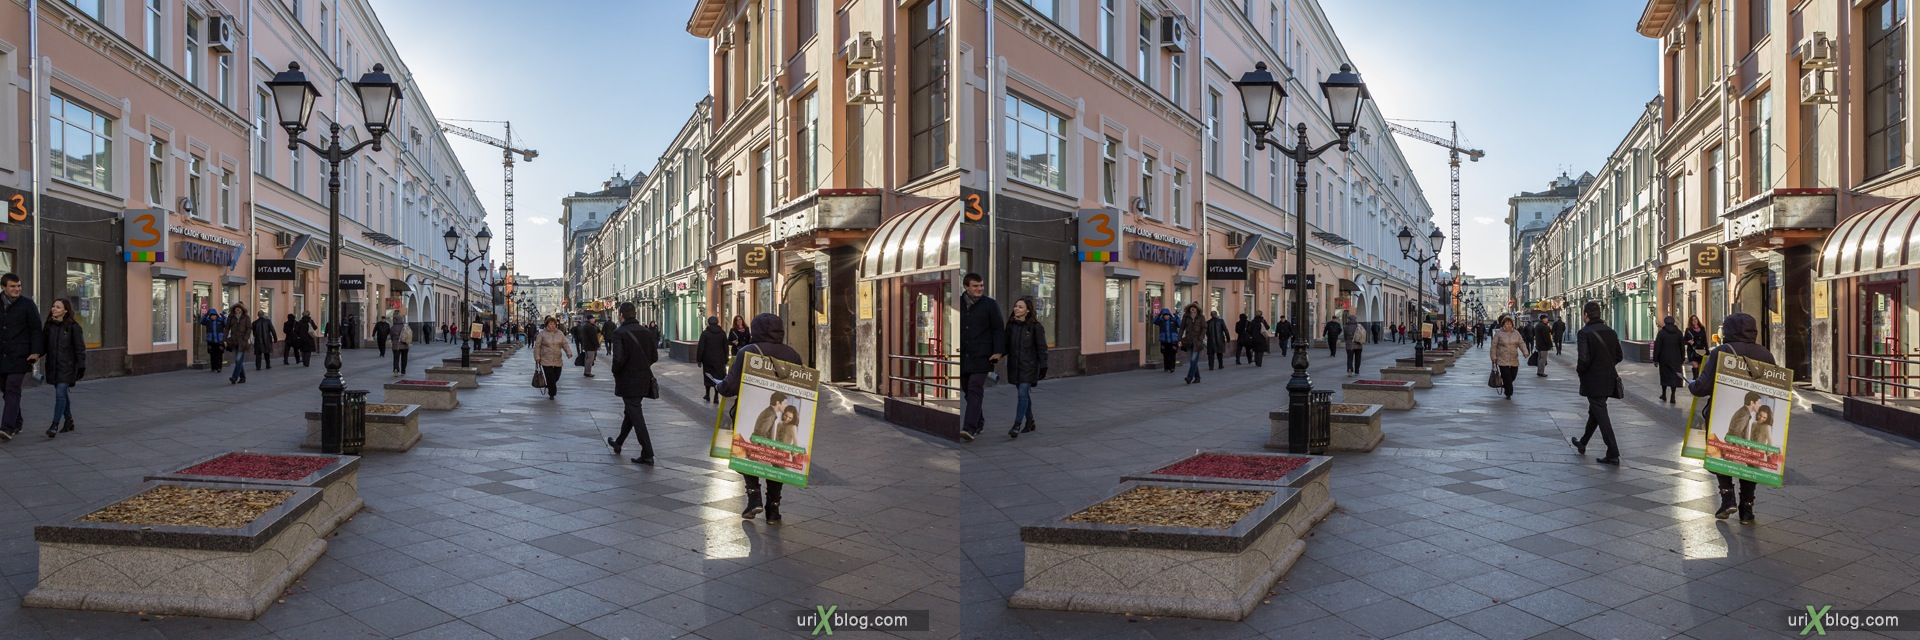 2013, Moscow, Russia, Rozhdestvenka, street, new pedestrian zone, 3D, stereo pair, cross-eyed, crossview, cross view stereo pair, stereoscopic